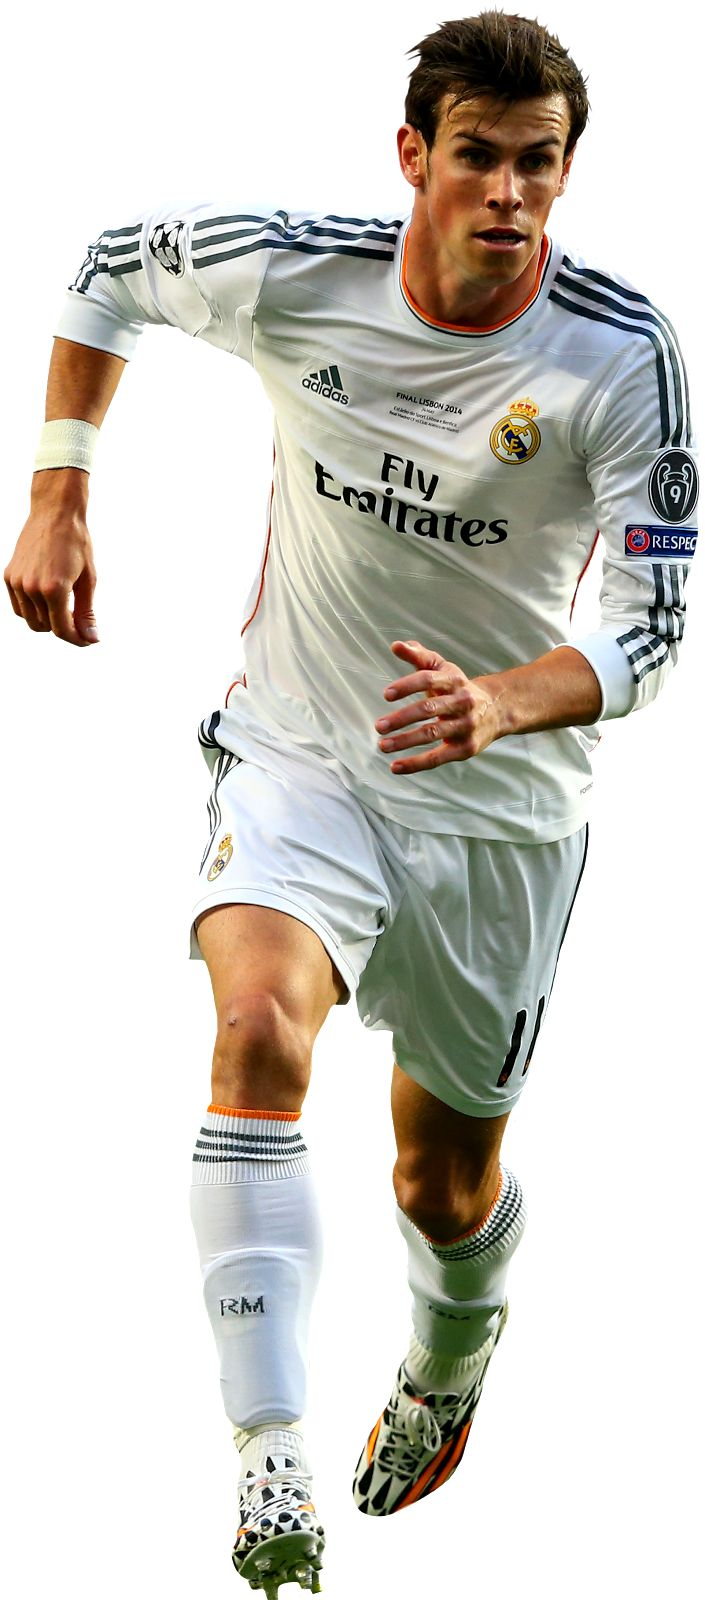 Gareth Bale of Real Madrid in the 2014 Champions League